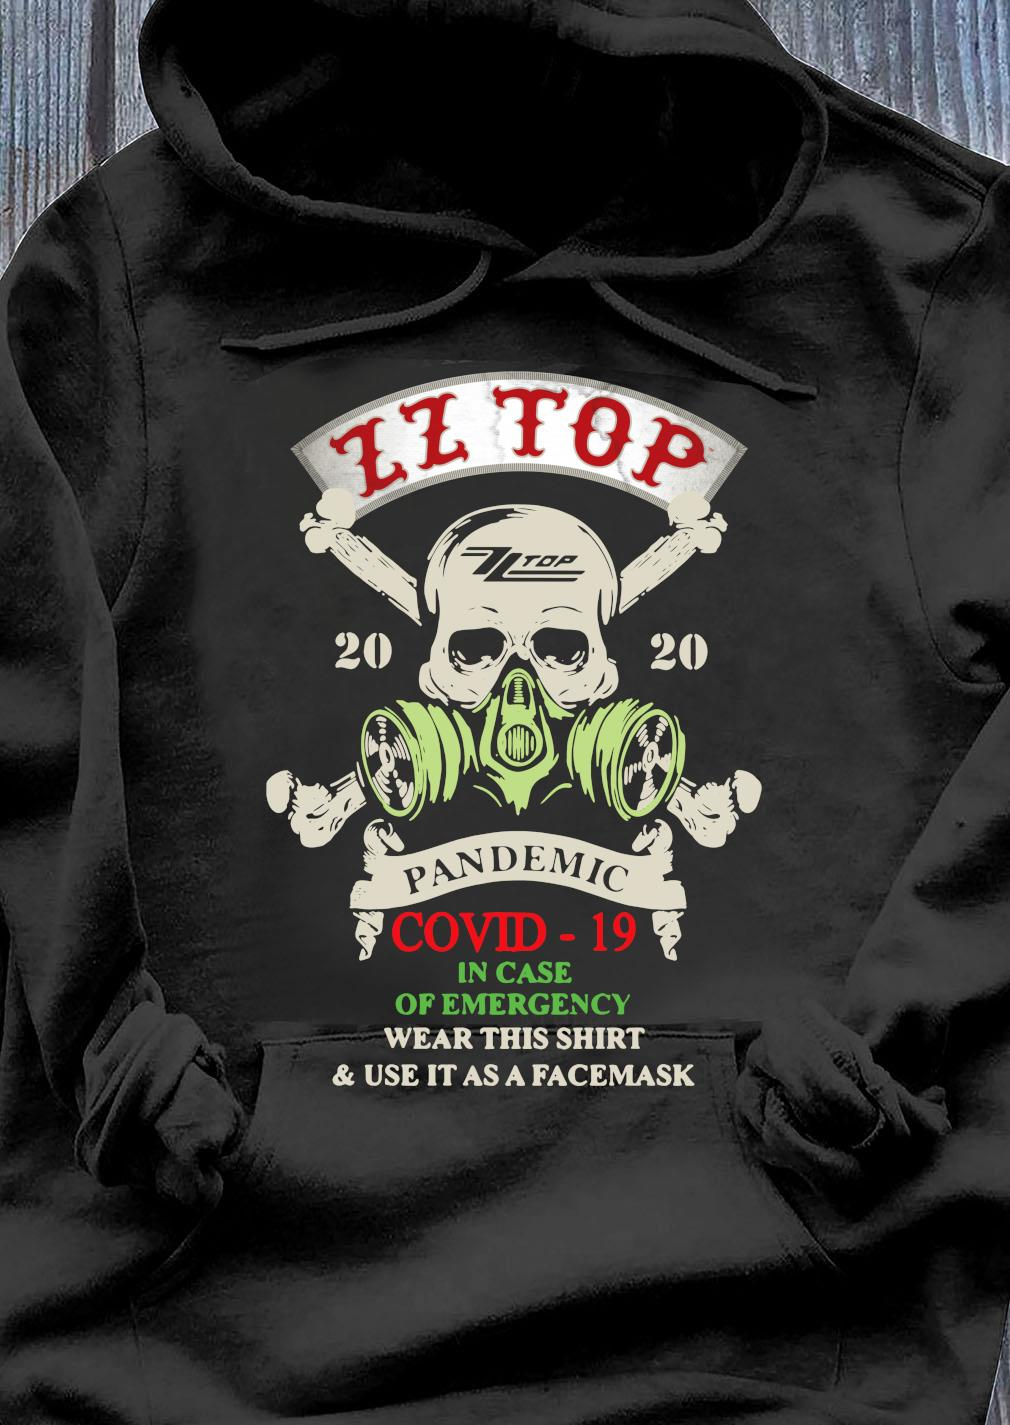 Skull Zz Top 2020 Pandemic Covid-19 In Case Of Emergency Wear This Shirt And Use It As A Facemask Shirt Hoodie